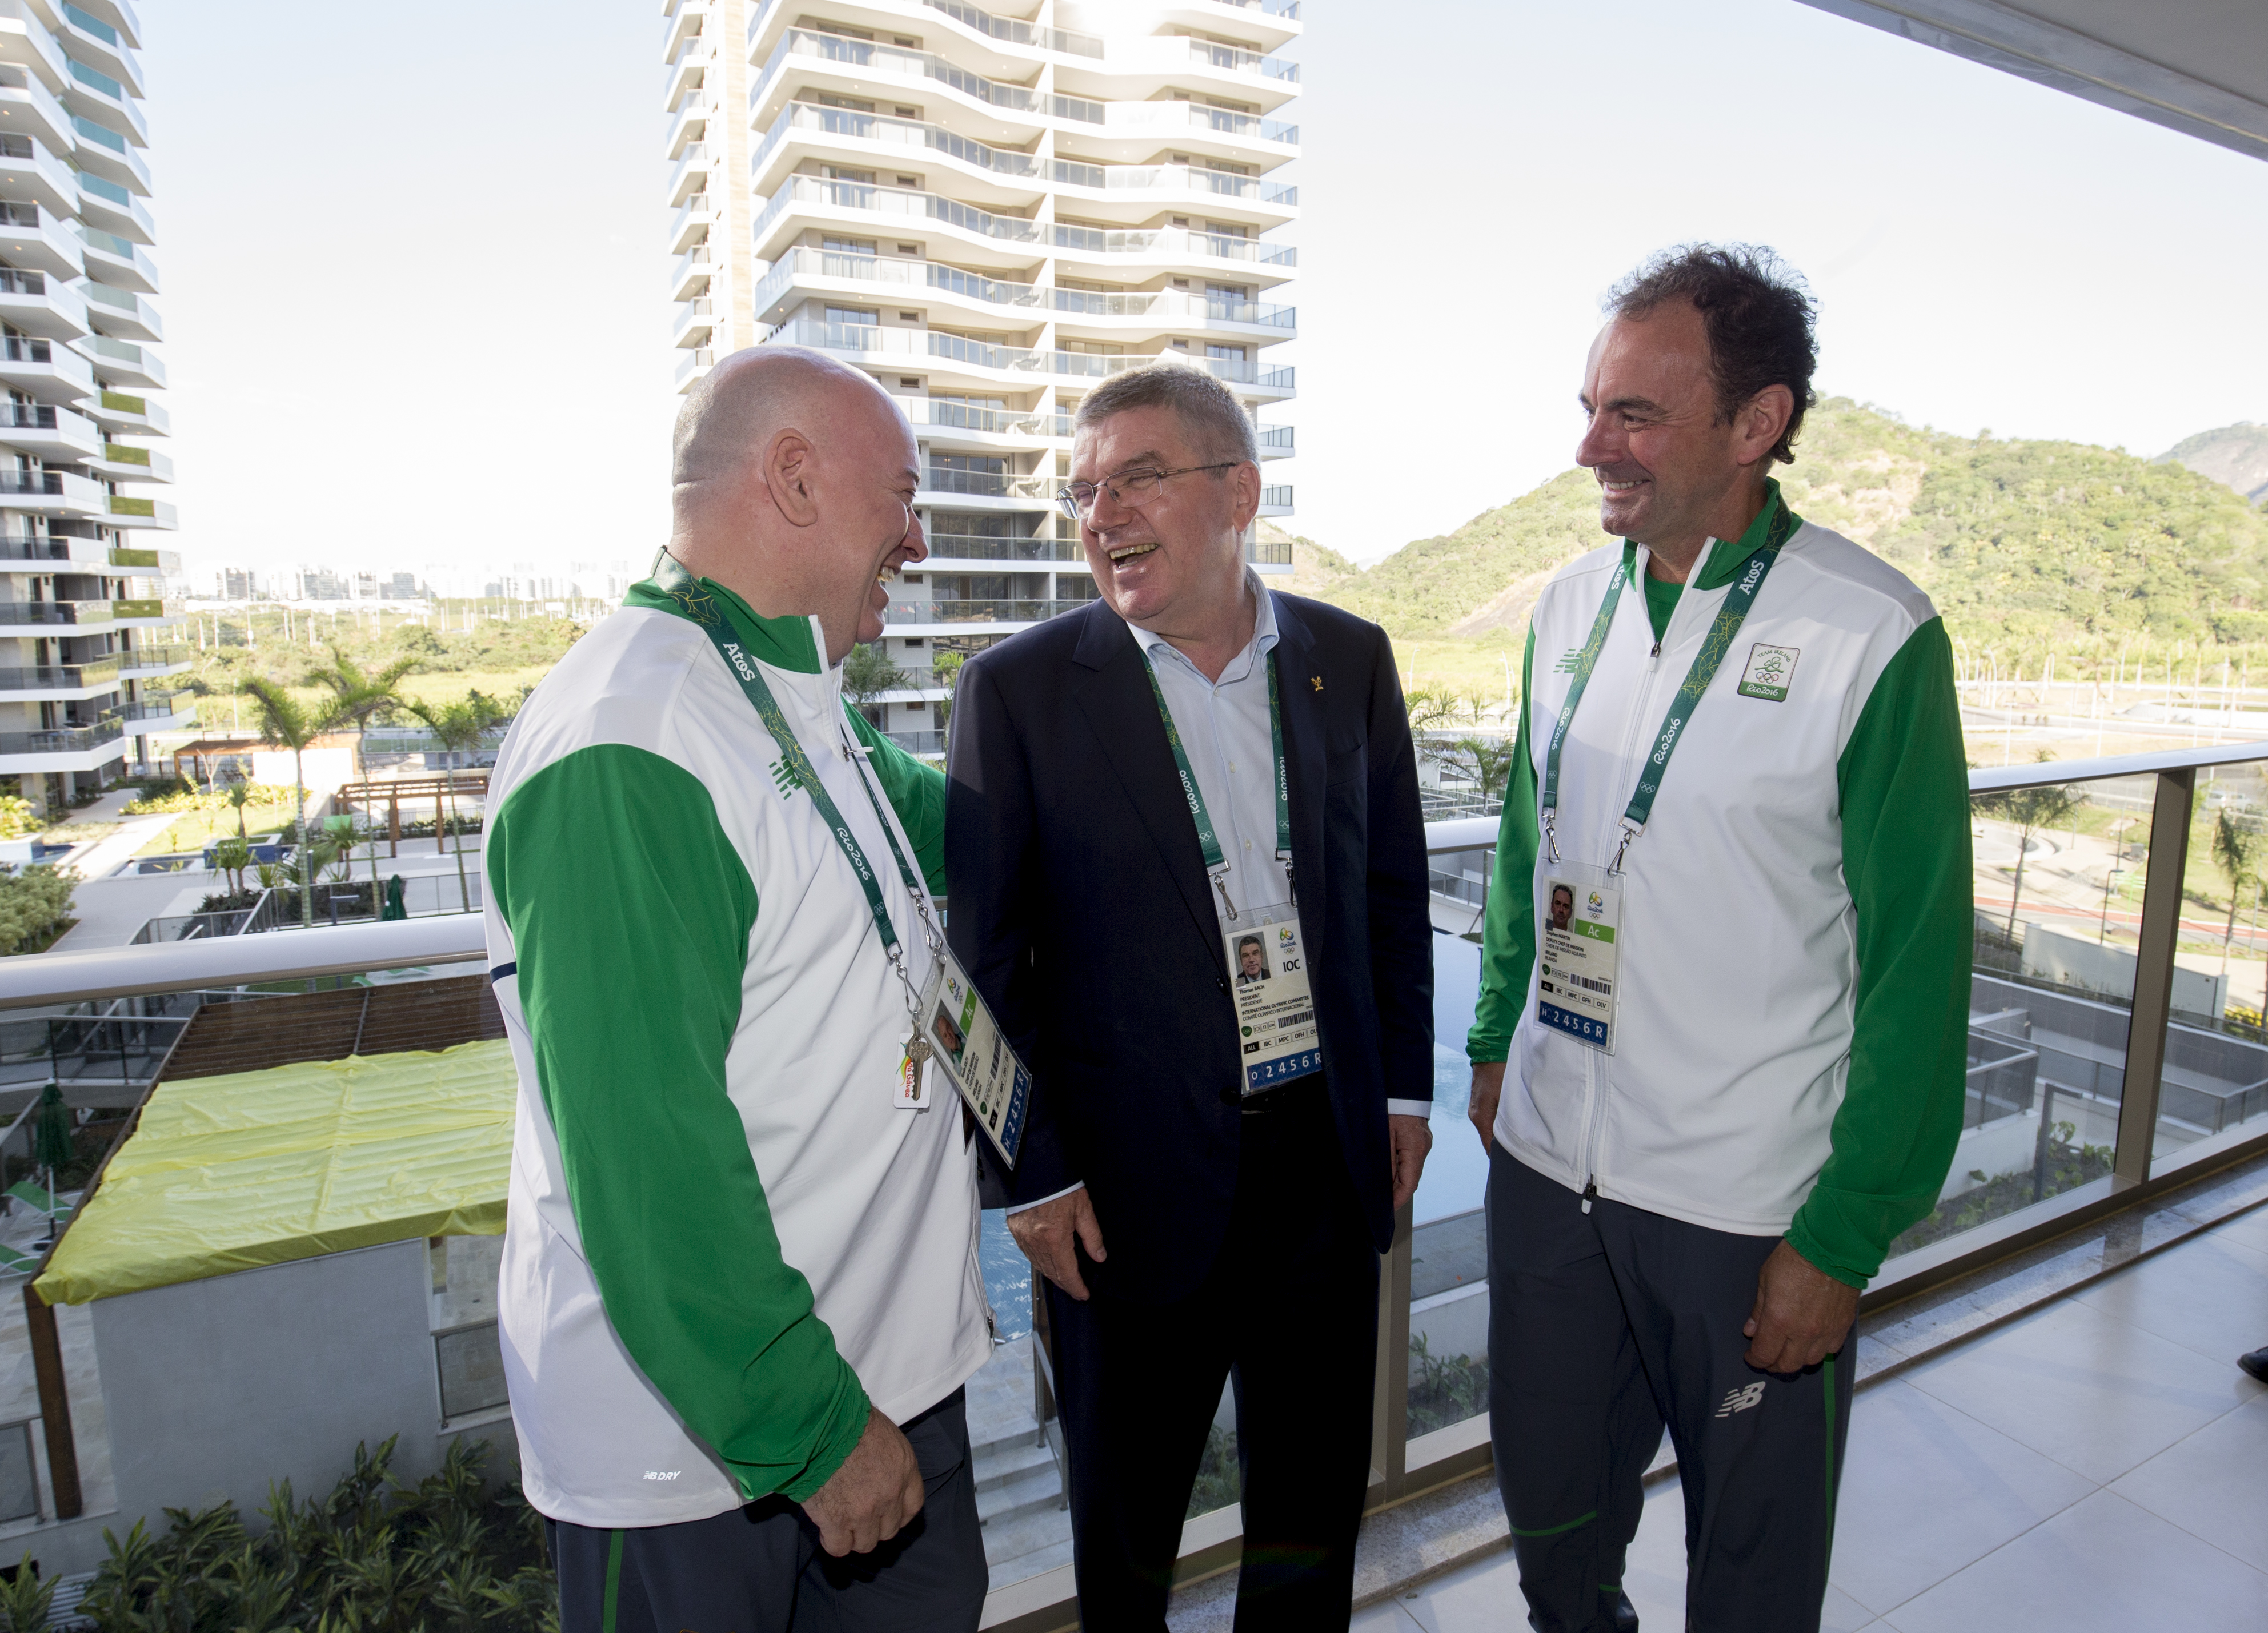 RIO DE JANEIRO - BRAZIL- 27th July 2016:  IOC President Thomas Bach arrives in Rio De Janeiro to attend the Rio 2016 Olympic Games. President Bach went directly to the Olympic Village from the airport to meet athletes and view the facilities in the village. Meeting members of the Ireland NOC in their accommodation  Photograph by Ian Jones